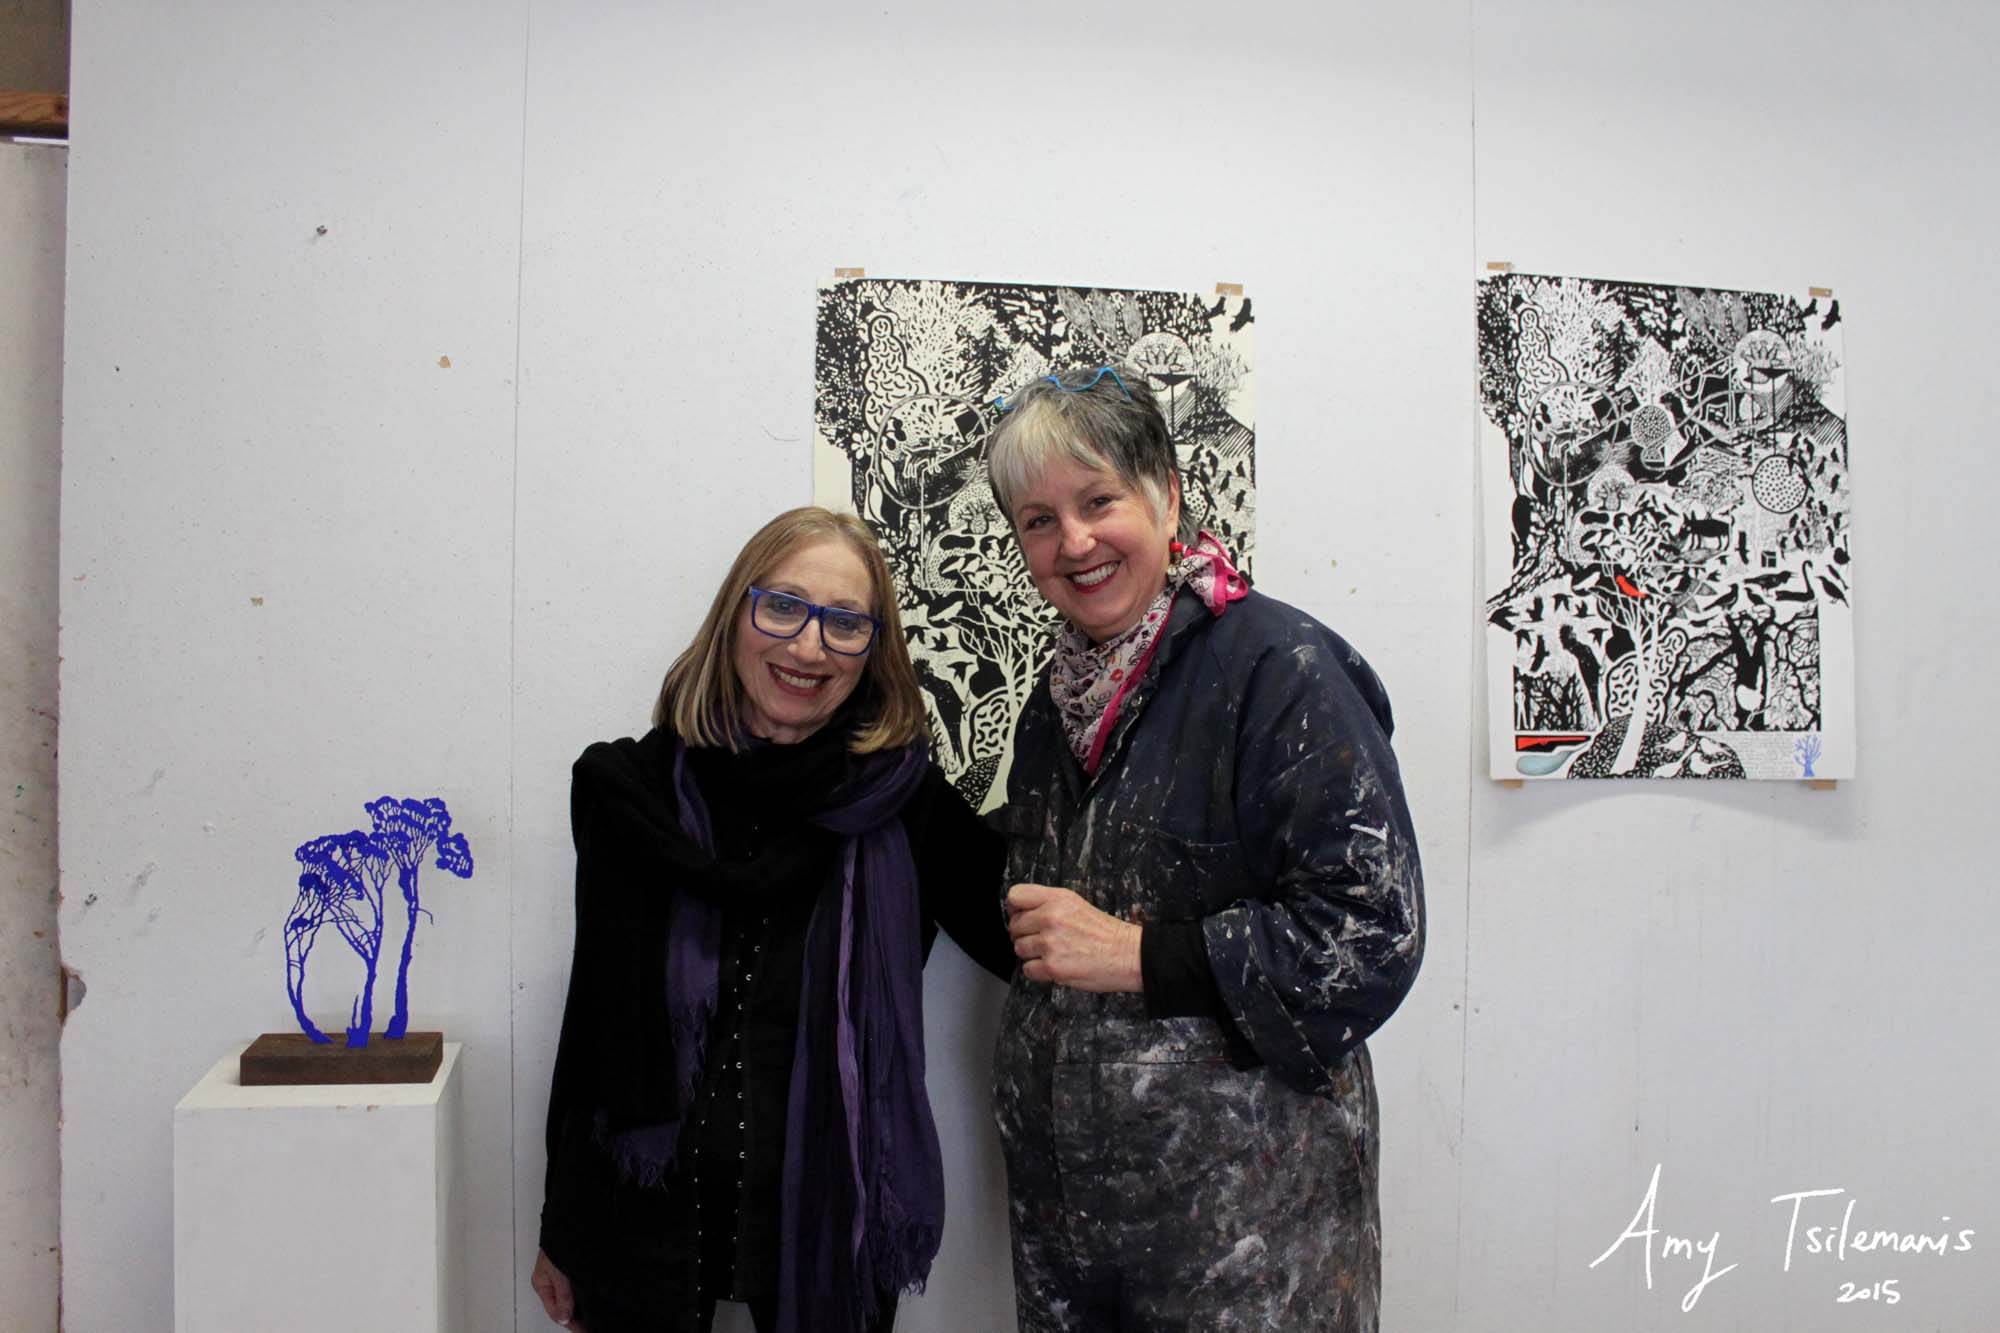 Judy Holding In Her Studio With Dianna Gold (co-curator Of The 37º 48' S: Artists Navigate MELBOURNE Project)